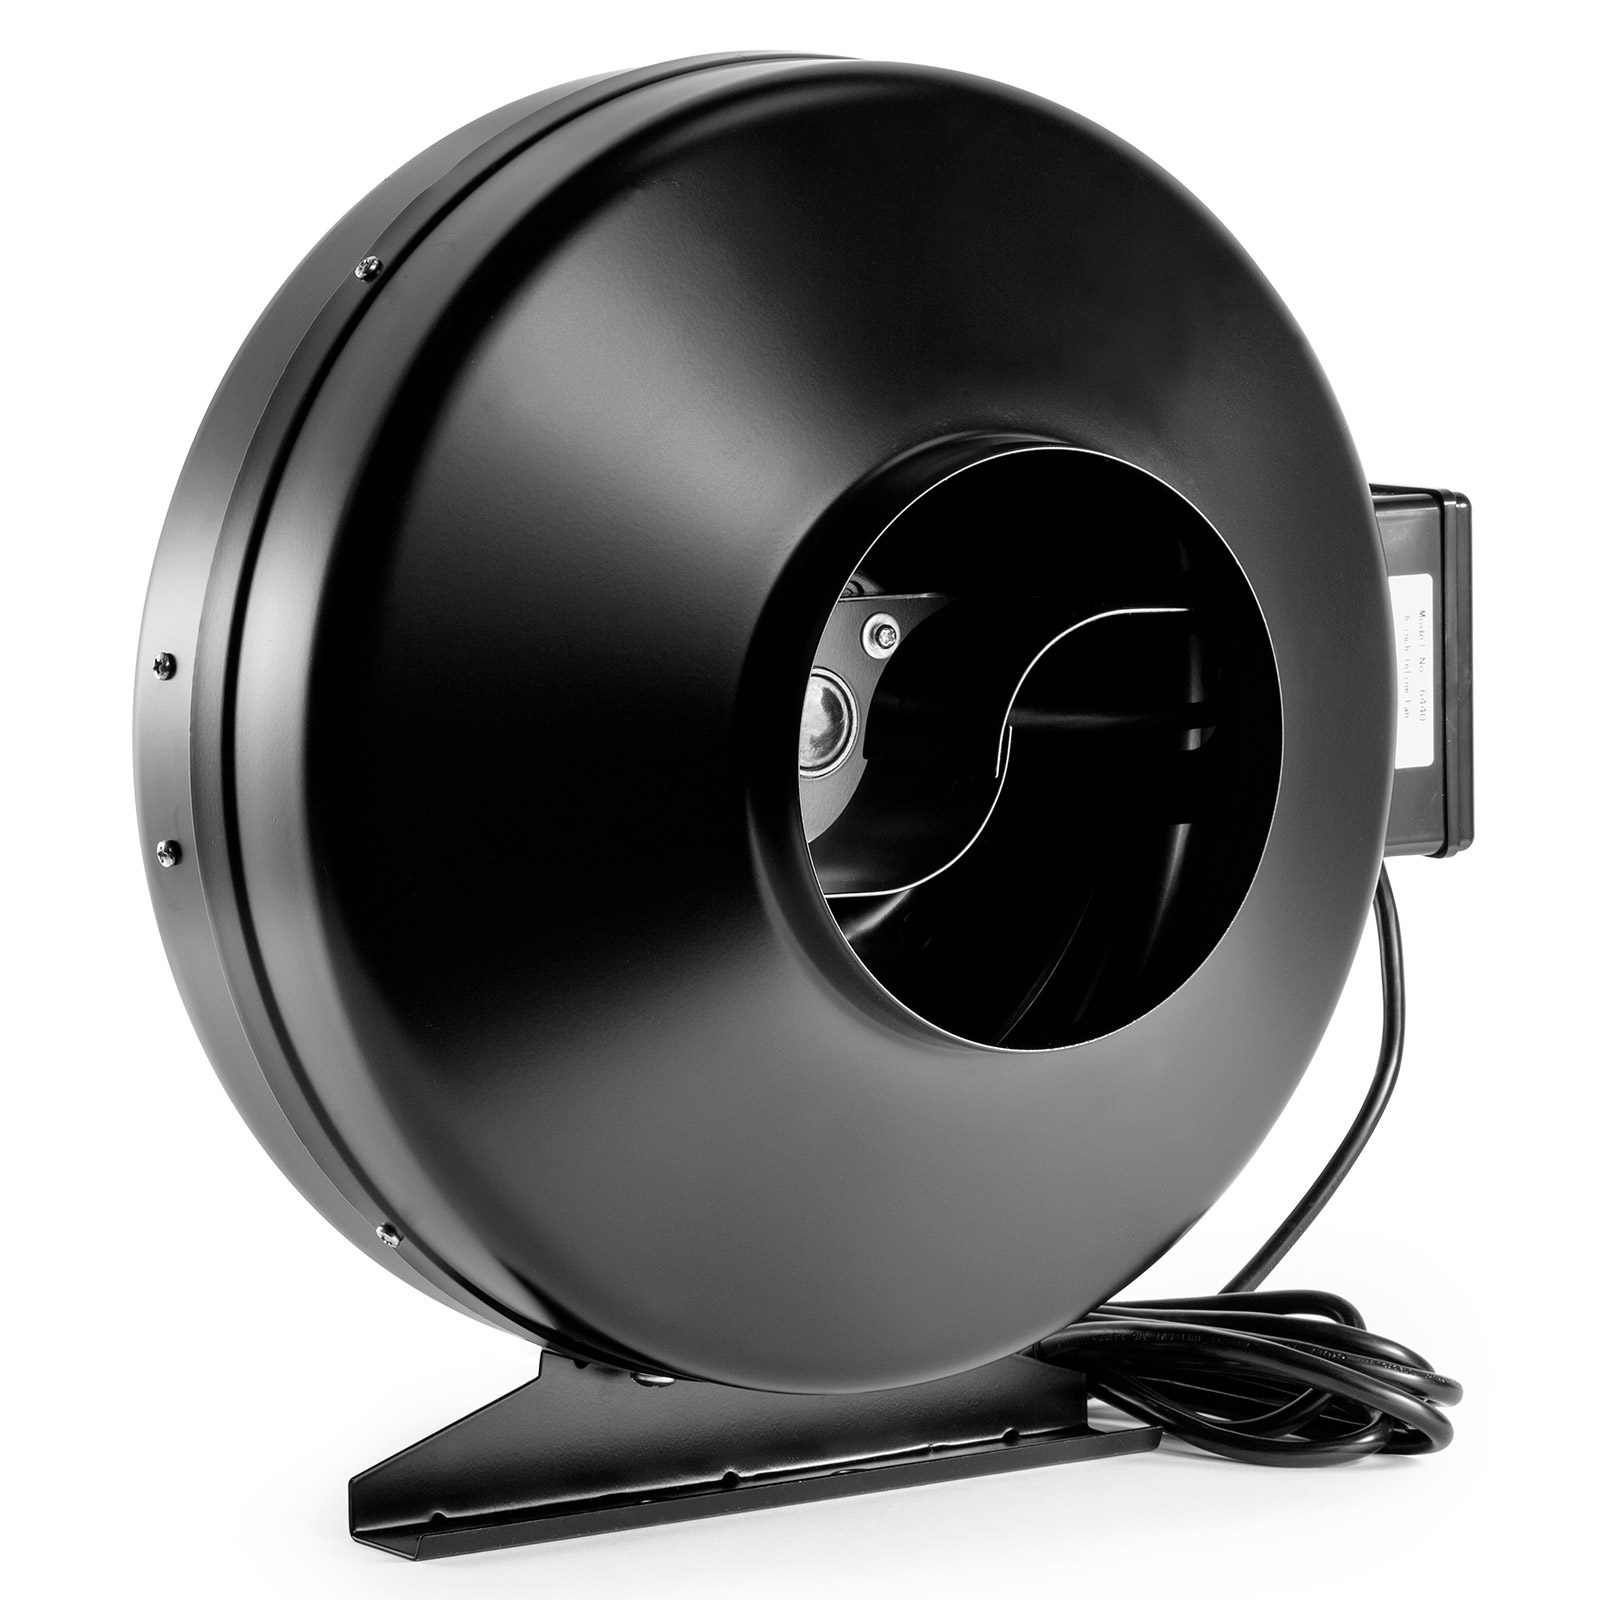 Room Vent Fans : Product image